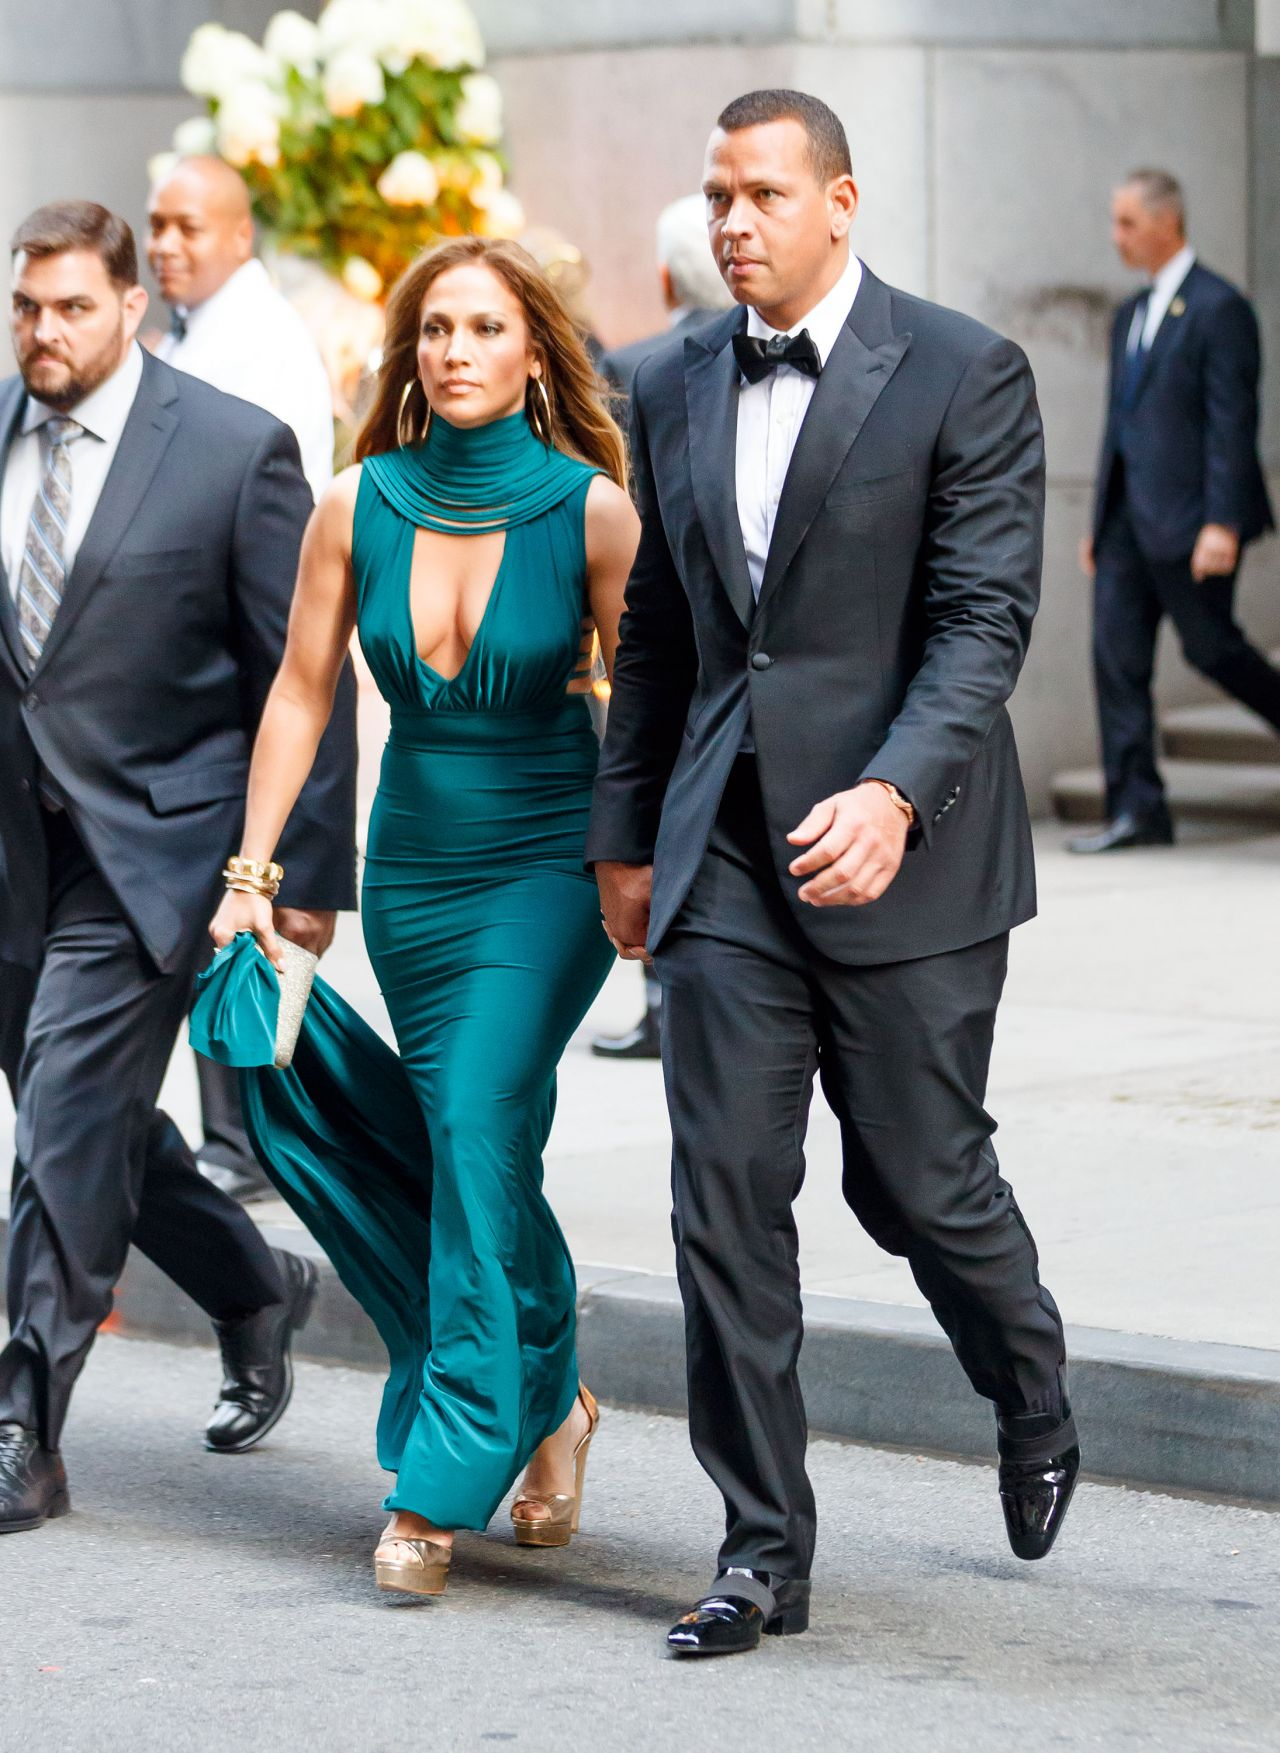 Jennifer Lopez And Alex Rodriguez Heading Into Friends